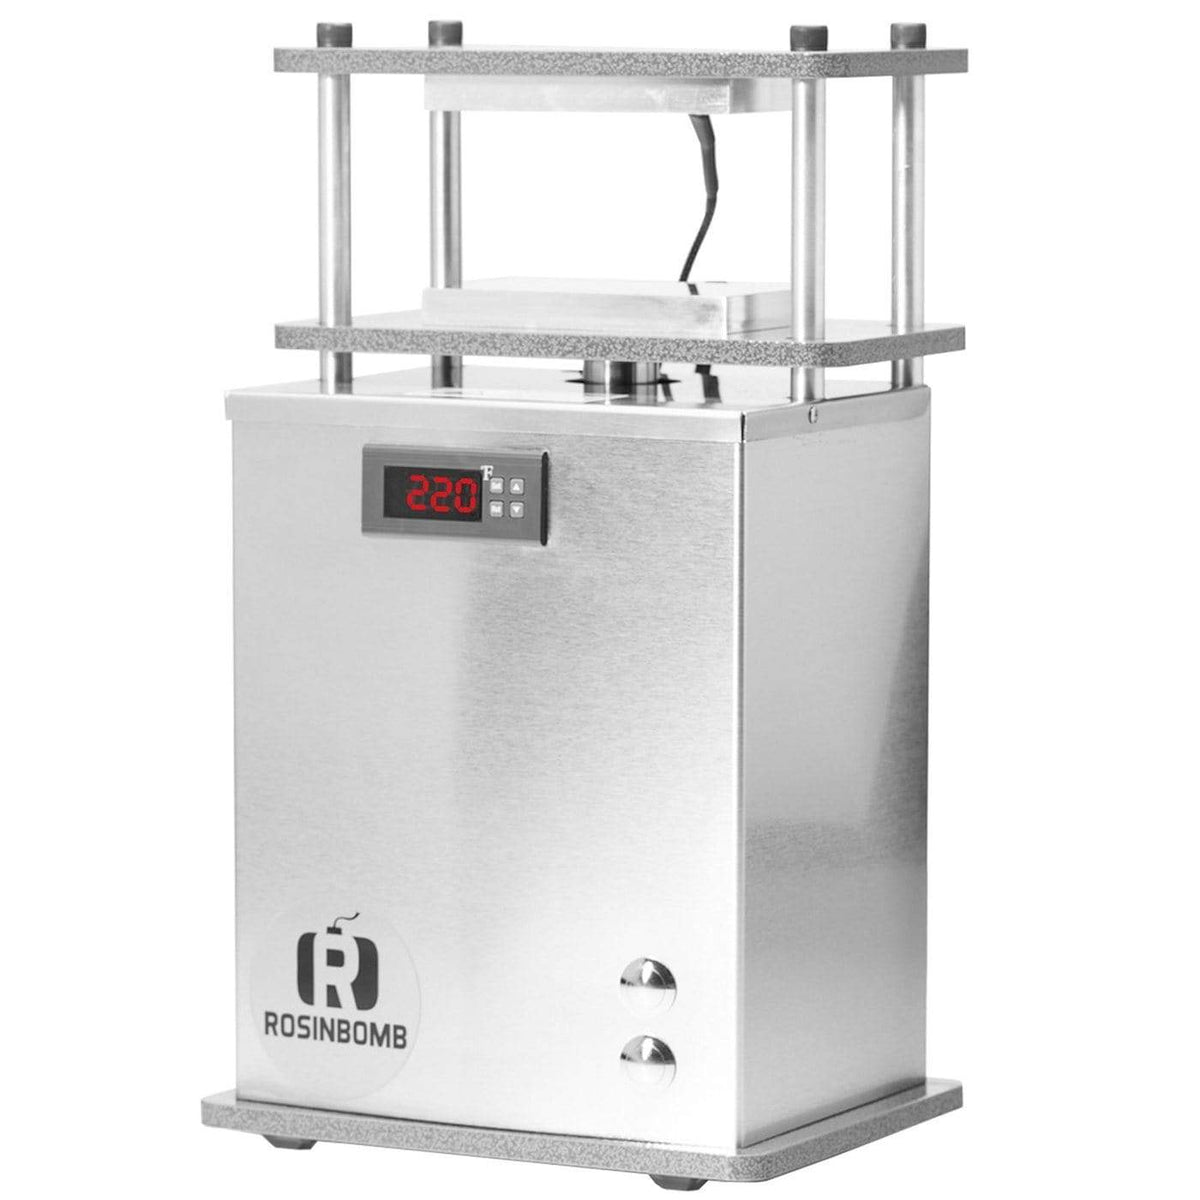 Rosinbomb M50 Electric Rosin Press - Trimleaf Canada